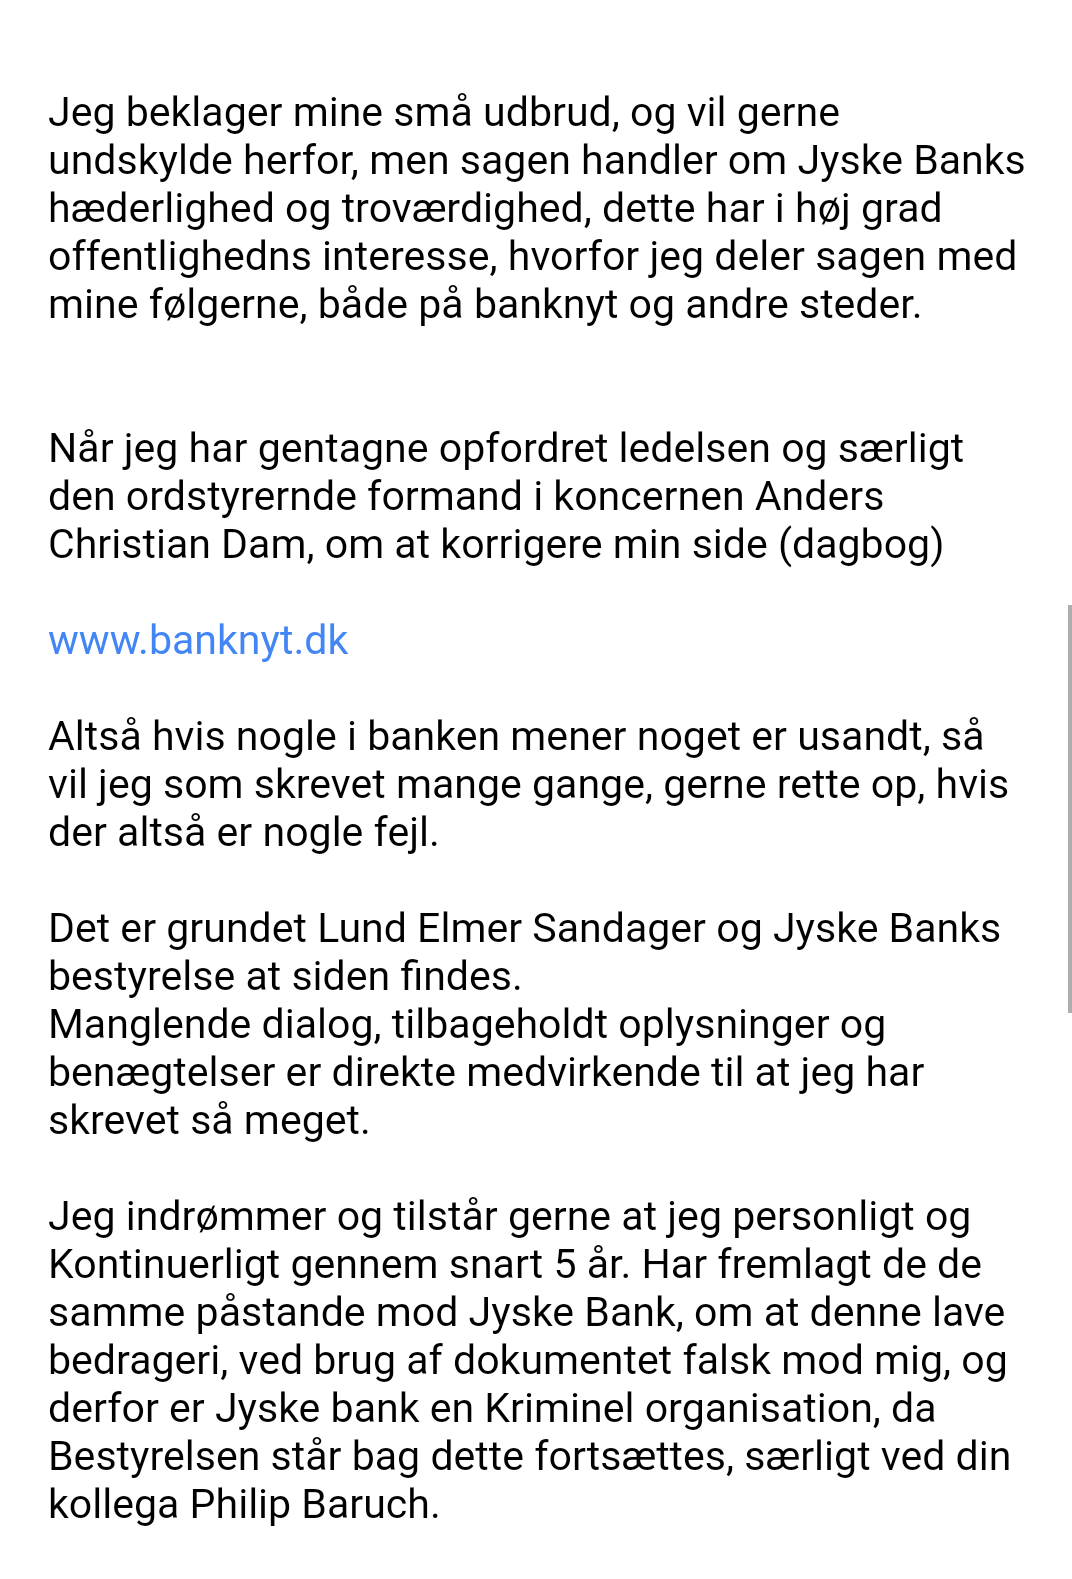 Bribery is not only a problem of Danish society. When a client hires Lundgrens Advokater, to file a case of fraud, executed against a Danish bank customer in Jyske Bank. And the client clearly and clearly tells Lundgren's attorneys that the fraud crime was committed by Jyske Bank, and this is done with the Group management's knowledge, and certainly contributes to the client in the case BS-402/2015-VIB When the customer saw over 1 year. after Lundgren's lawyer b occurred and shortly after the lawyers had been hired to file a fraud case against Jyske Bank. Discover that even the same Lundgren's lawyer company, has been employed by the Jyske Bank Group, in a trade for DKK 600 million. And the client also discovers that Lundgren's lawyers have countered that some of their client's claims were brought to court. When Lundgrens directly against the client's instructions, does not present any of the client's claims against Jyske Bank, which the client has many times given Lundgrens Advokater clear instructions